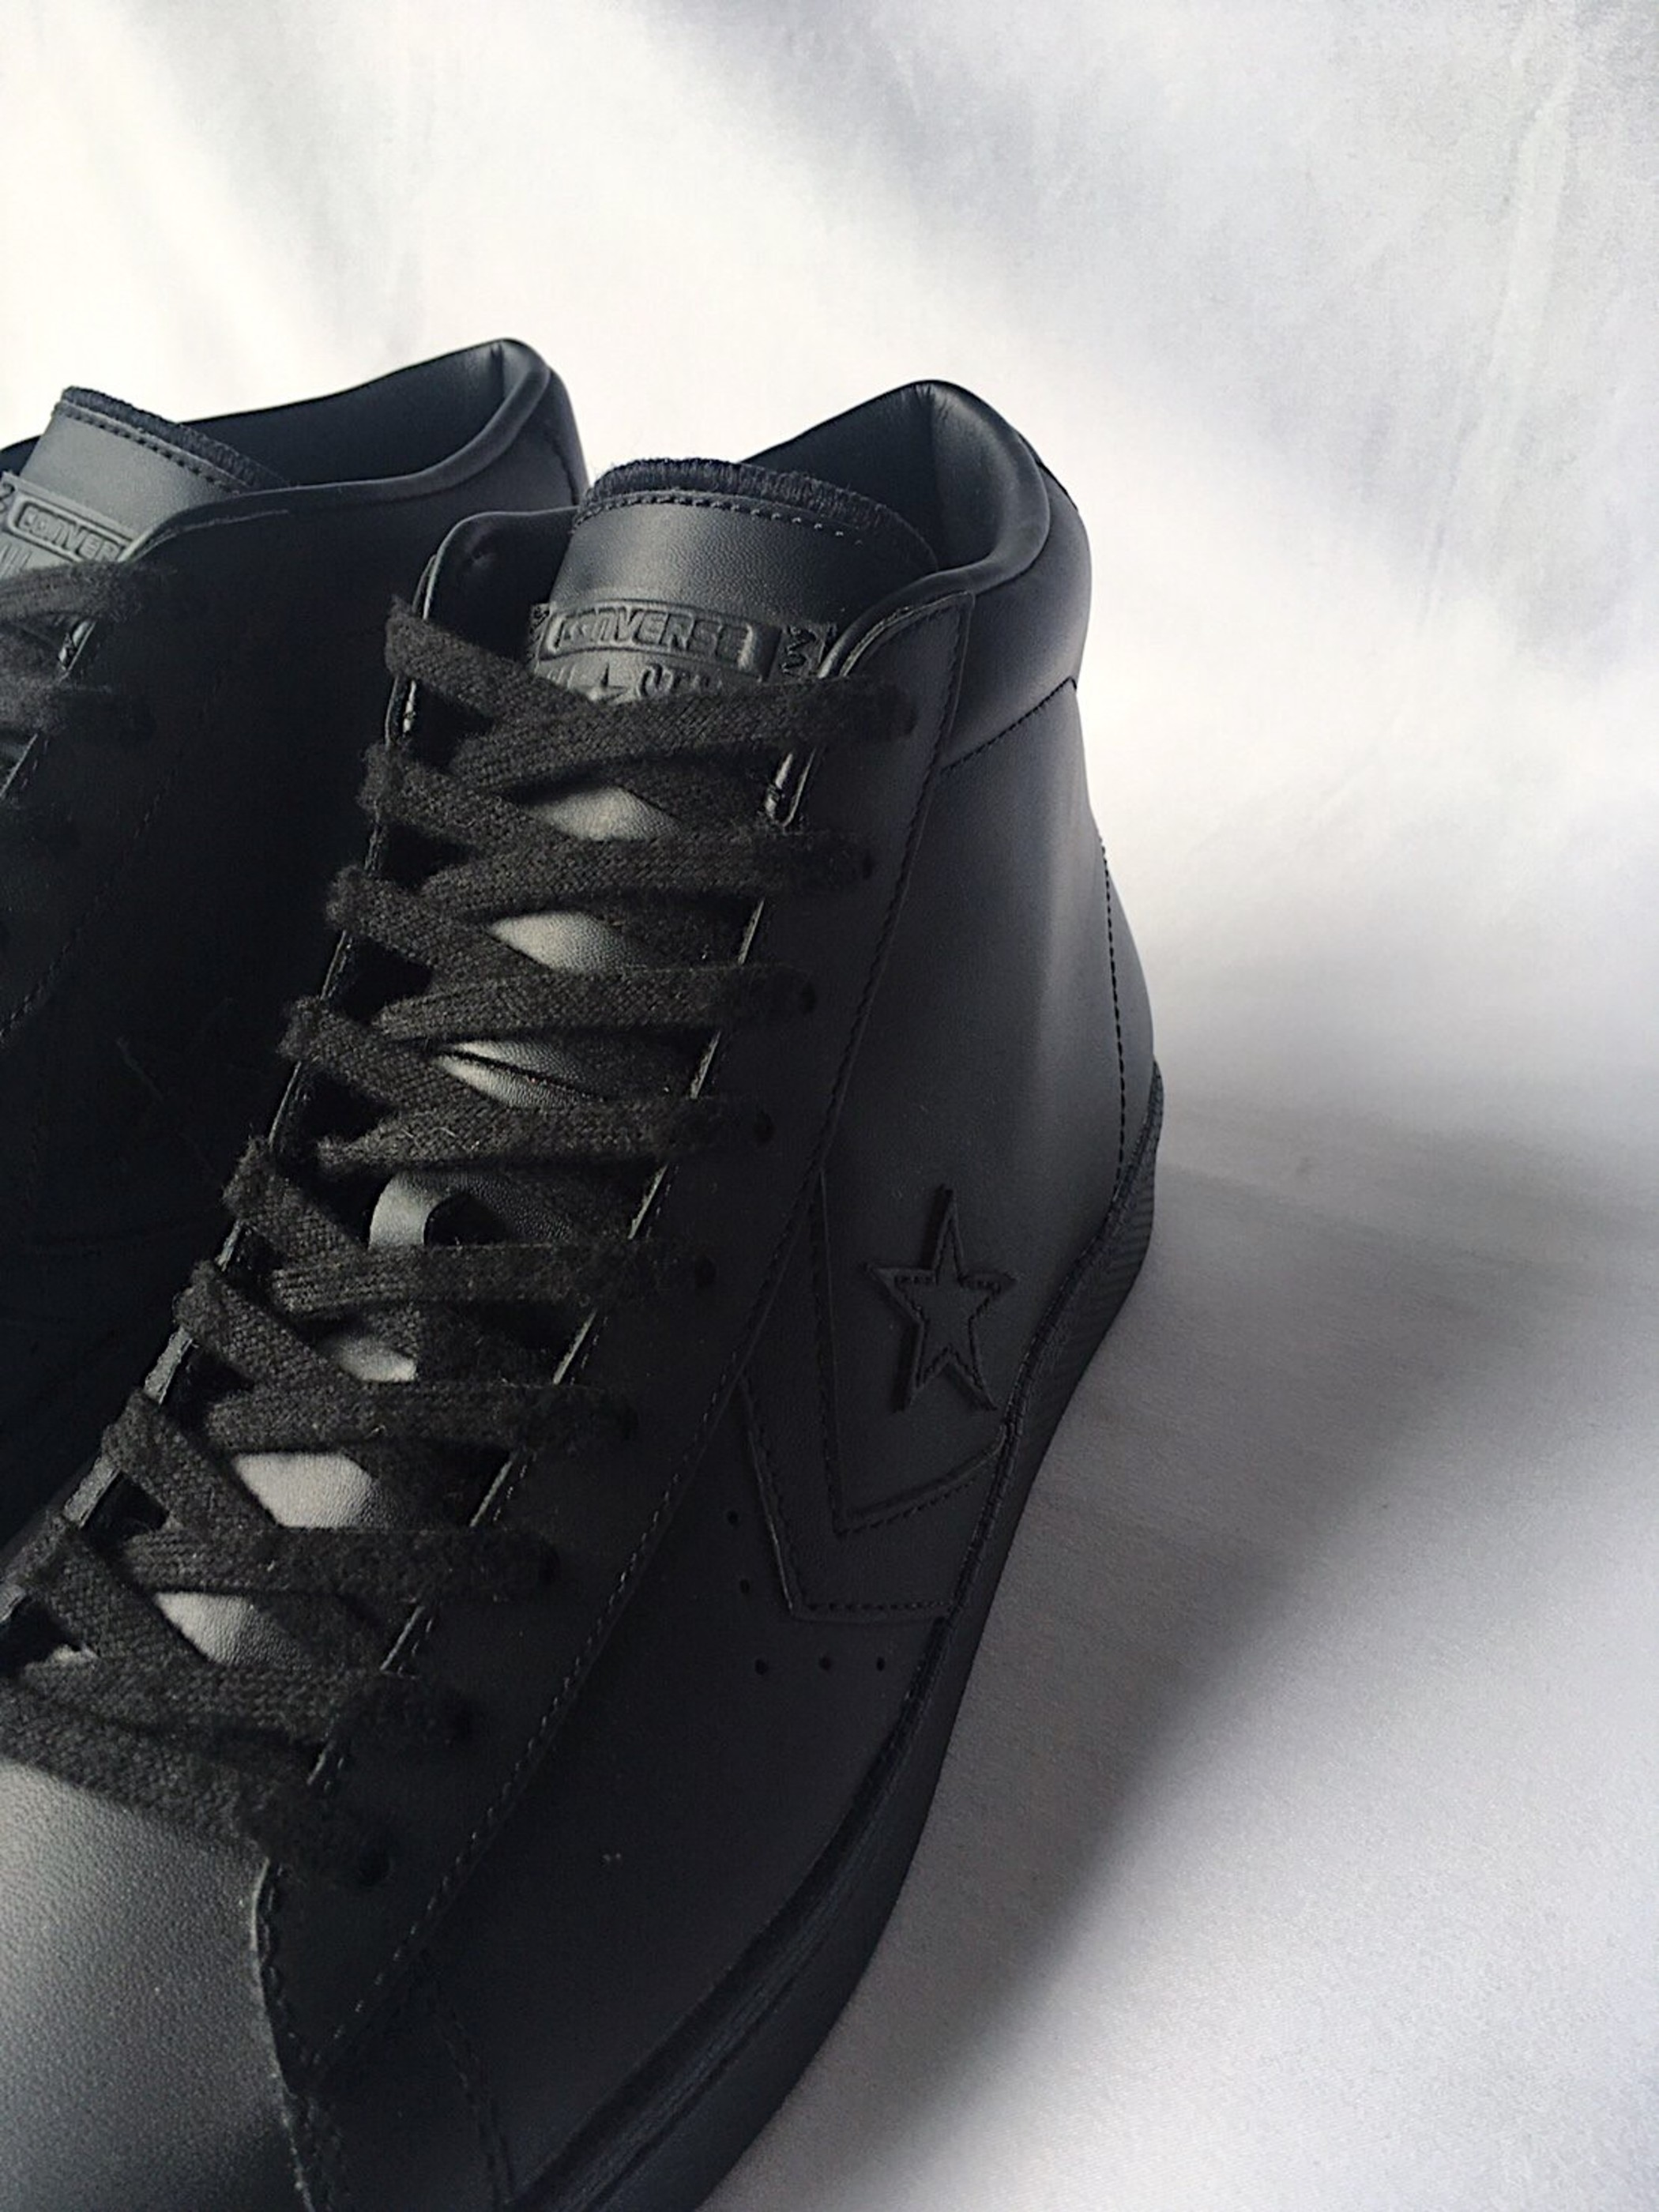 CONVERSE CONS PRO LEATHER 76 MID